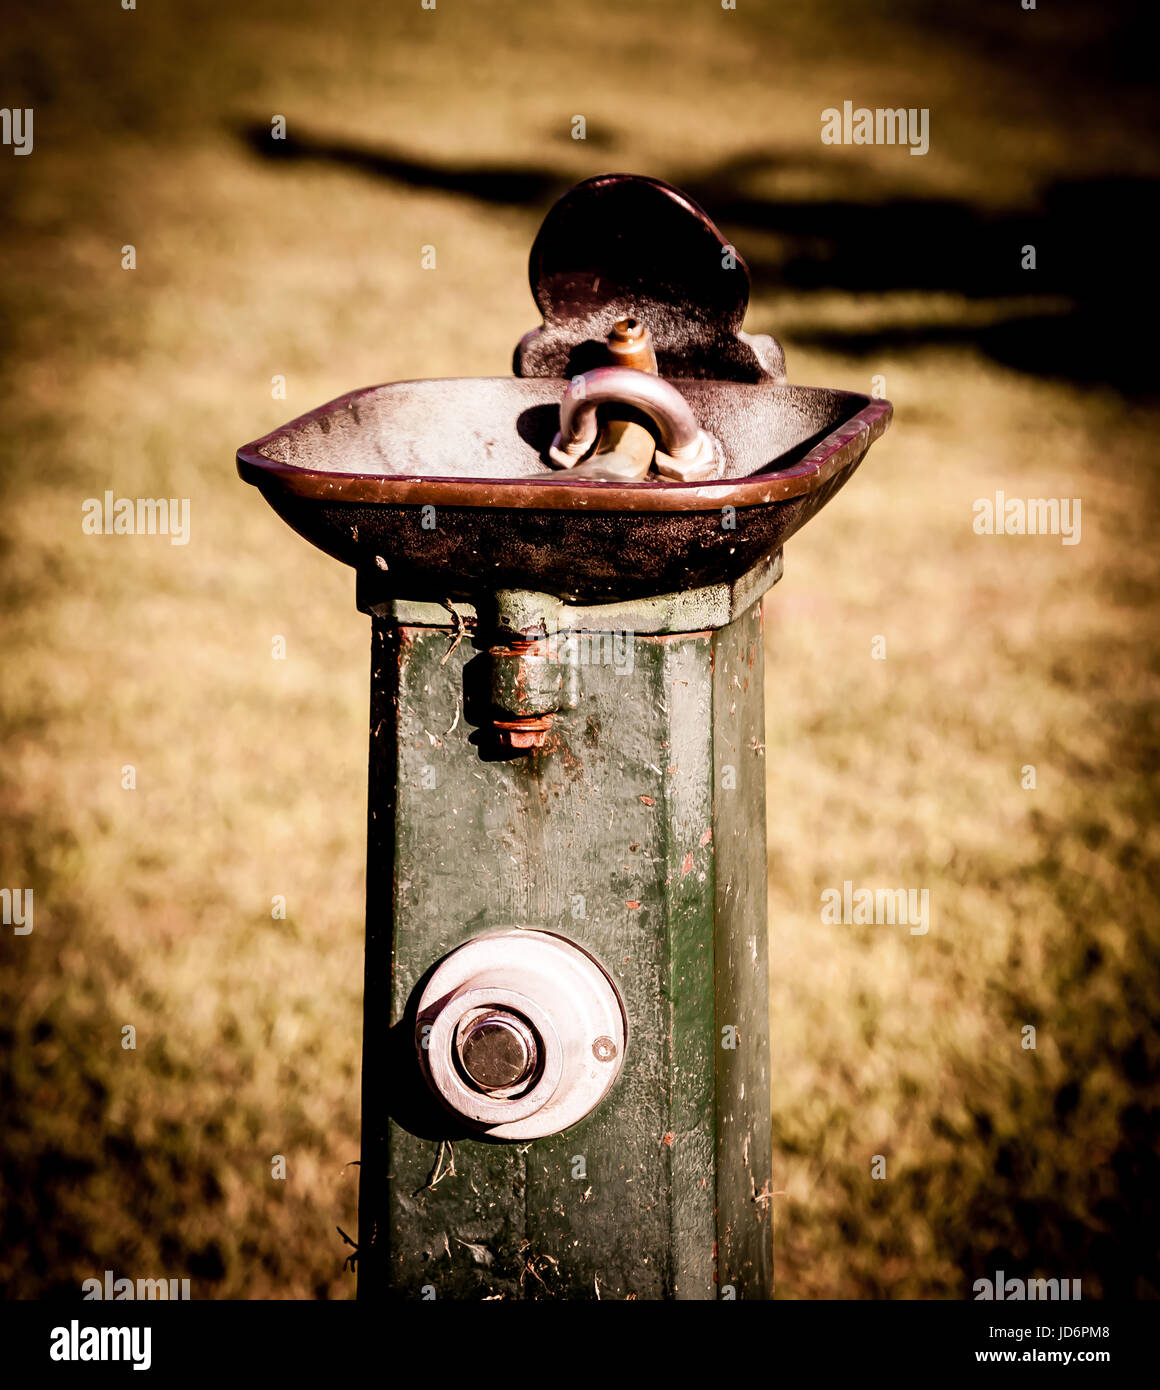 Water fountain. Old Water Fountain. Parks. Public parks. Rusty - Stock Image